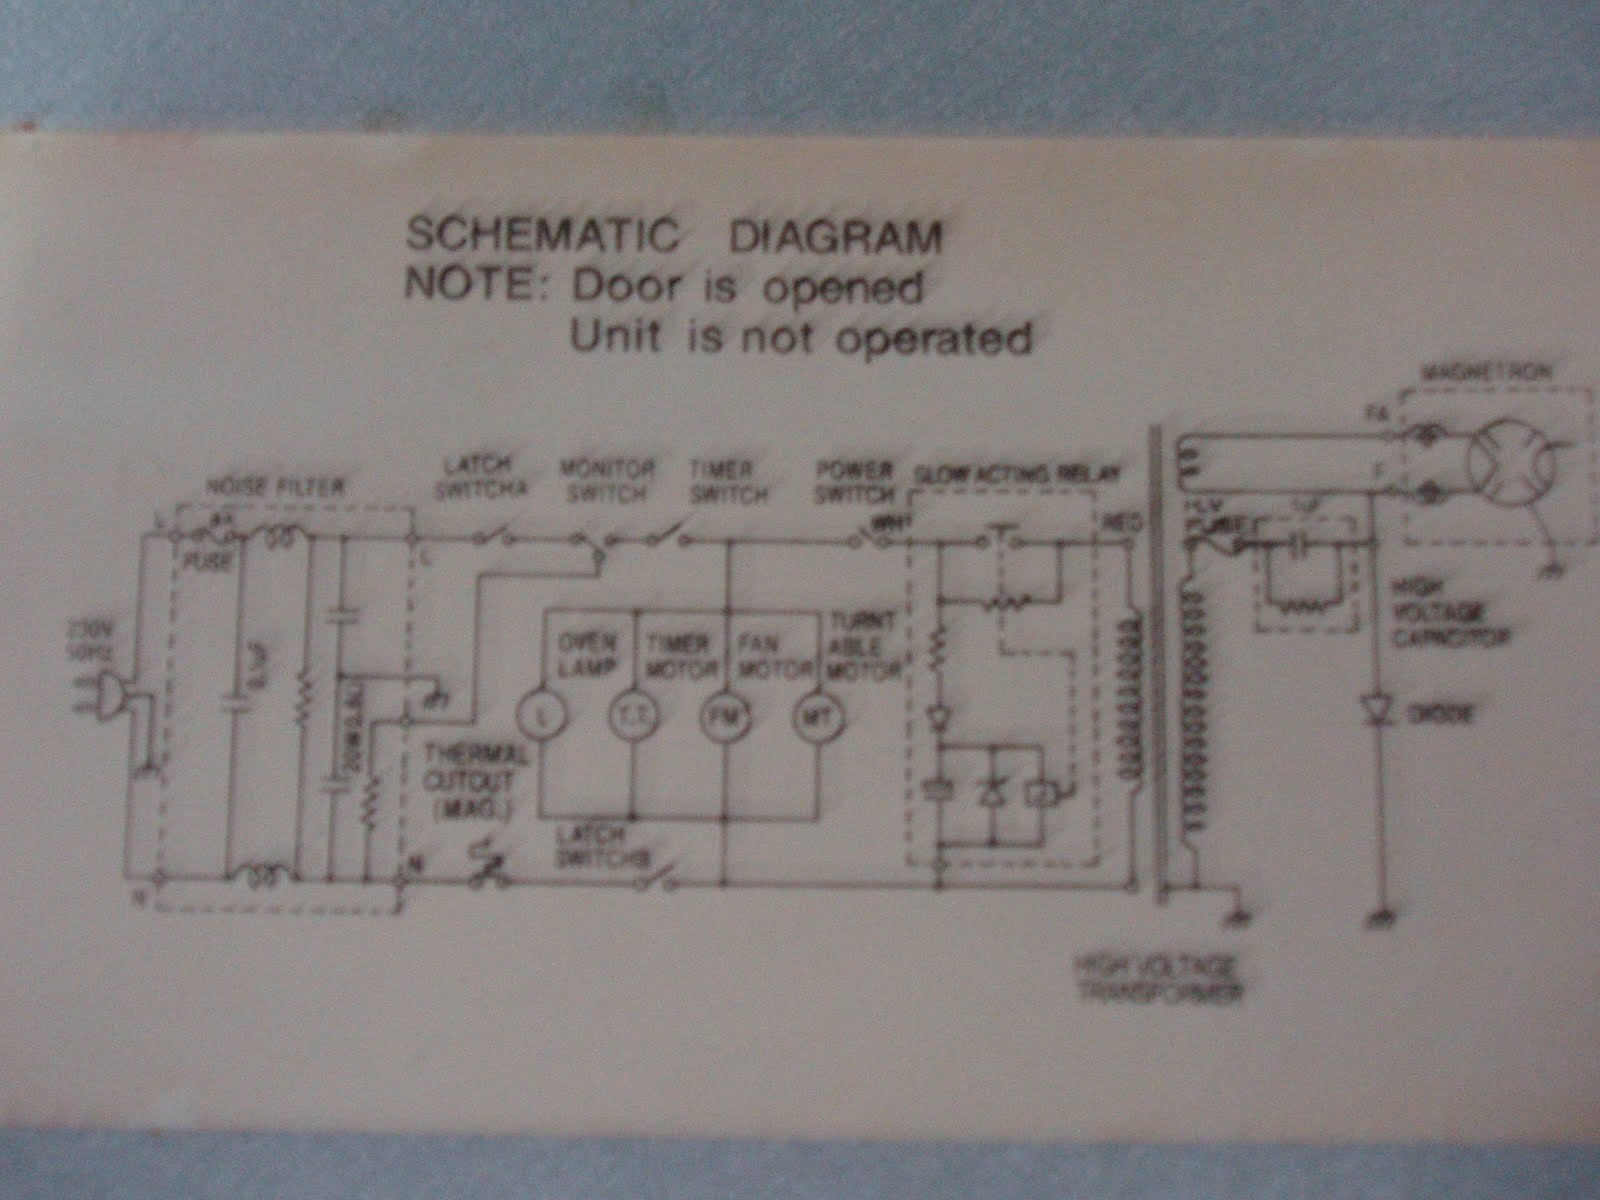 Microwave Oven Block Diagram – The Wiring Diagram – readingrat.net